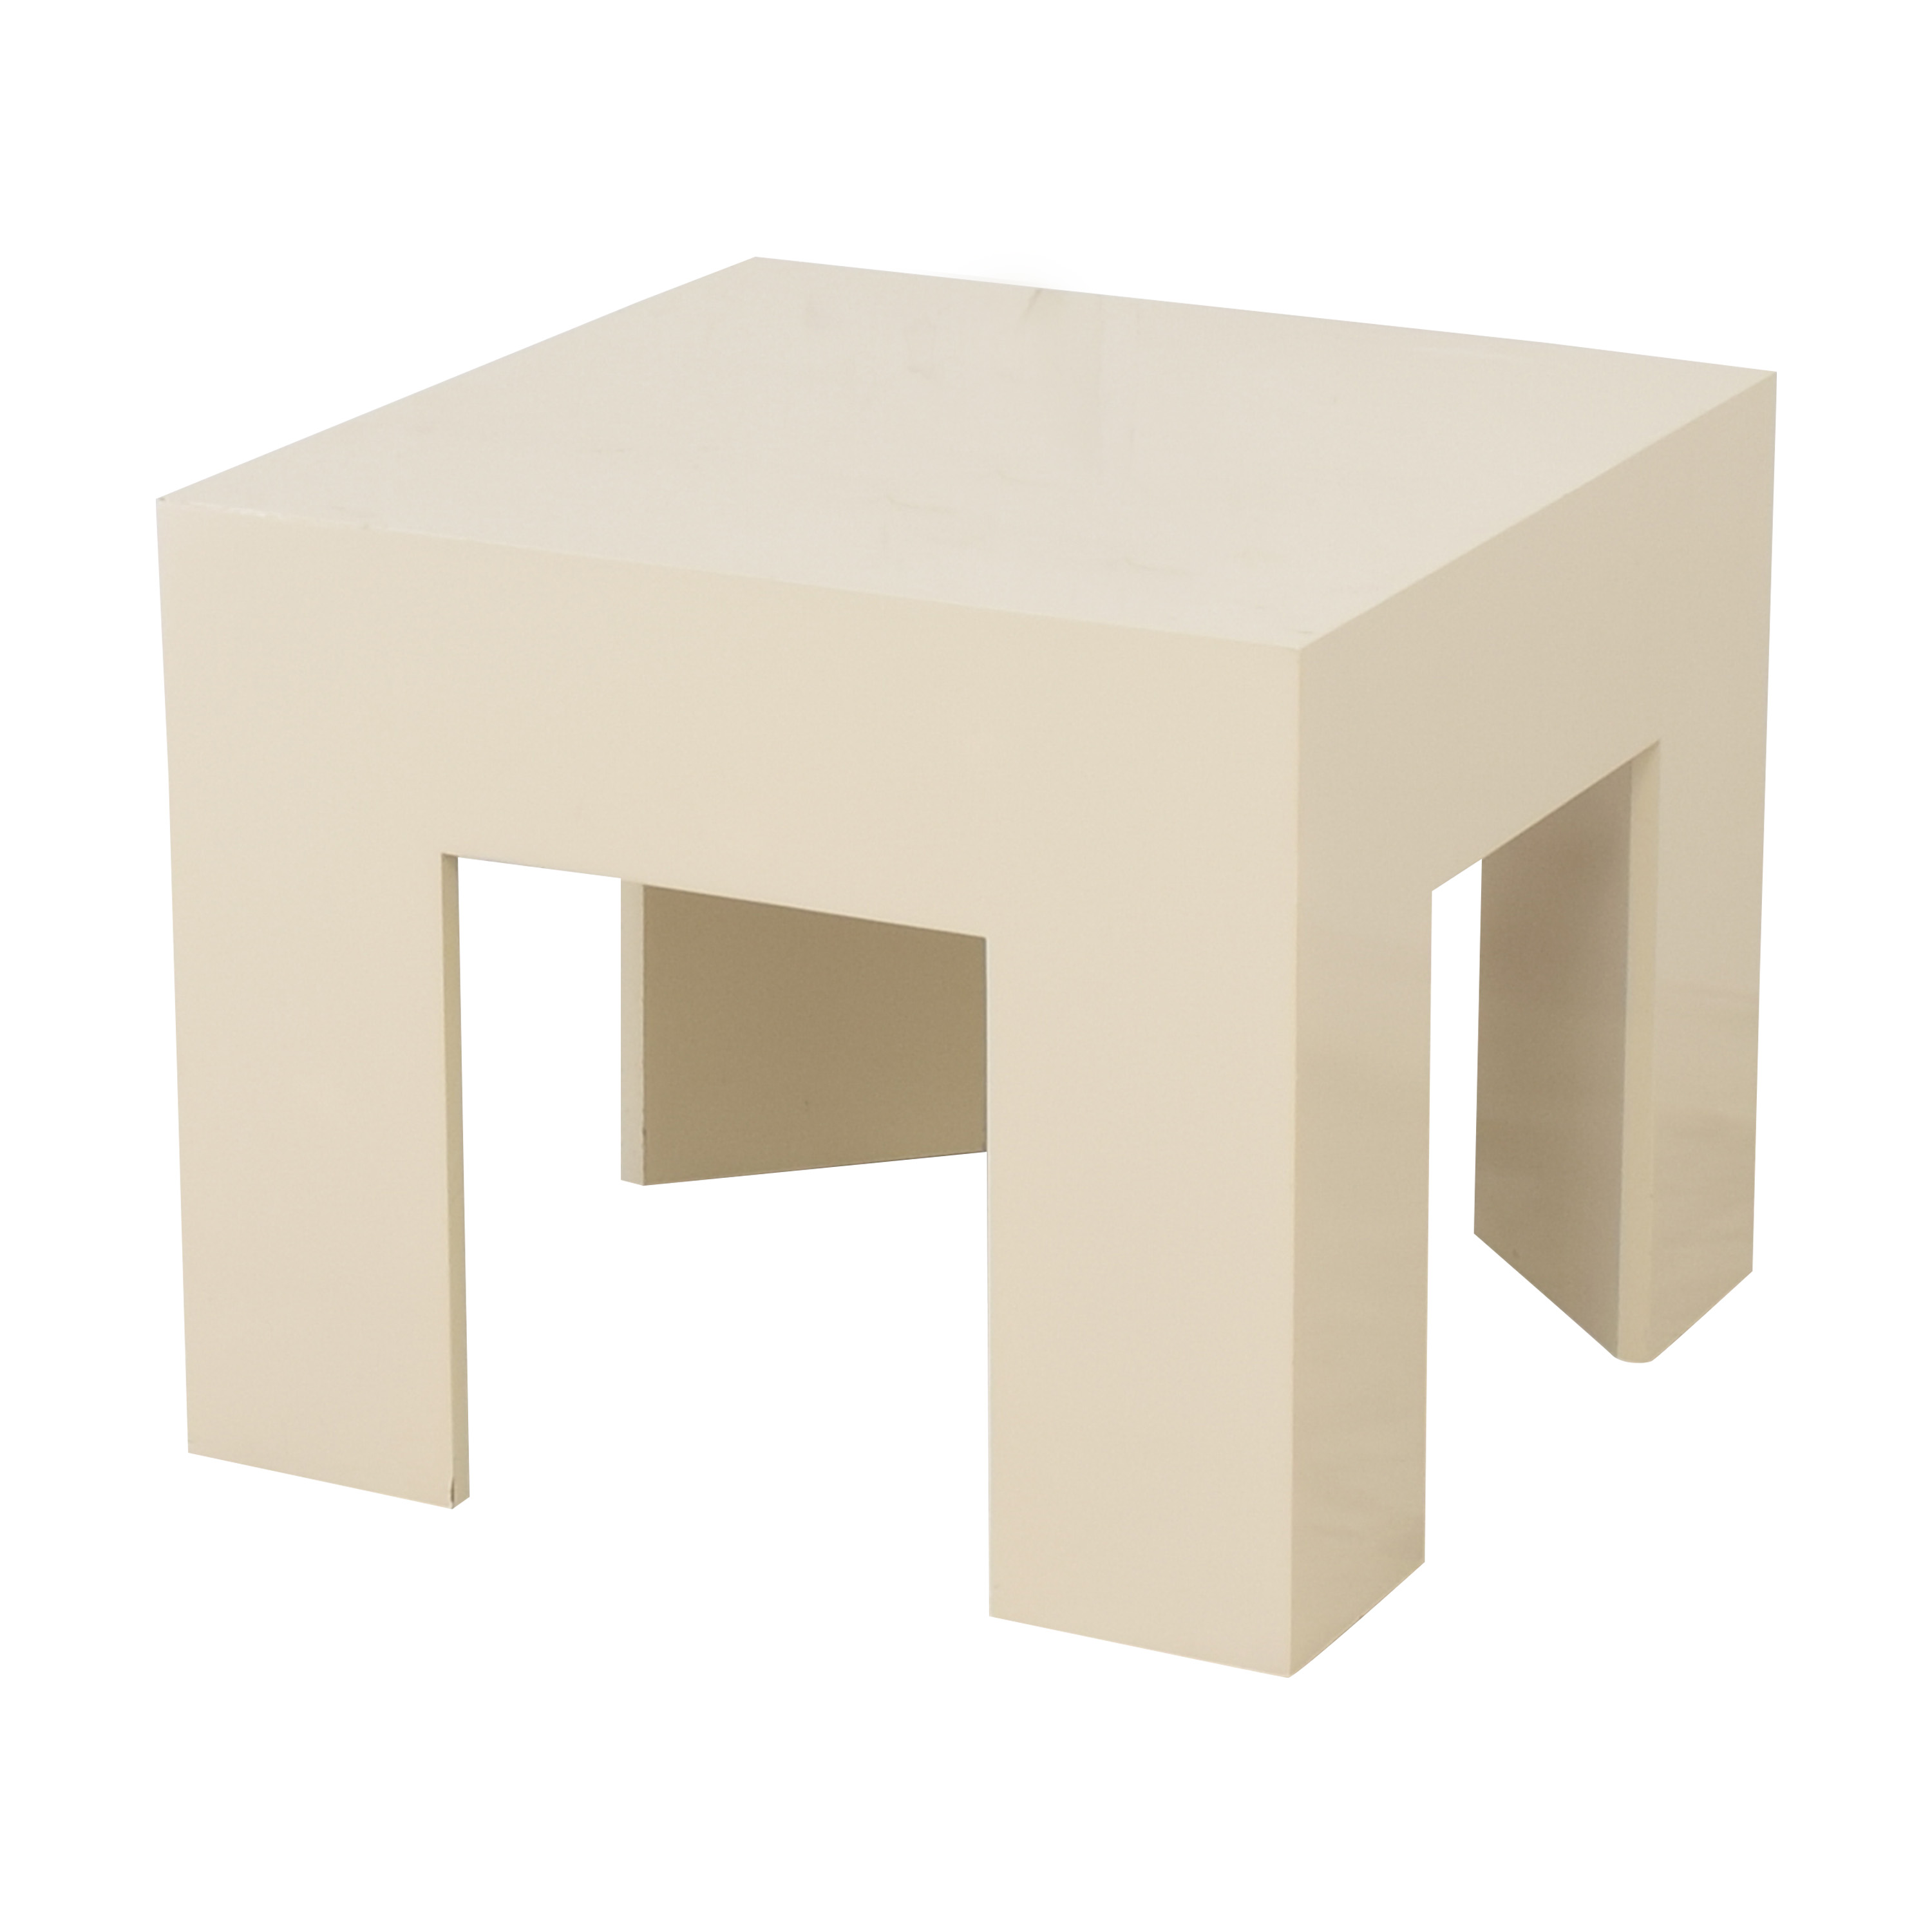 Square Accent Table used